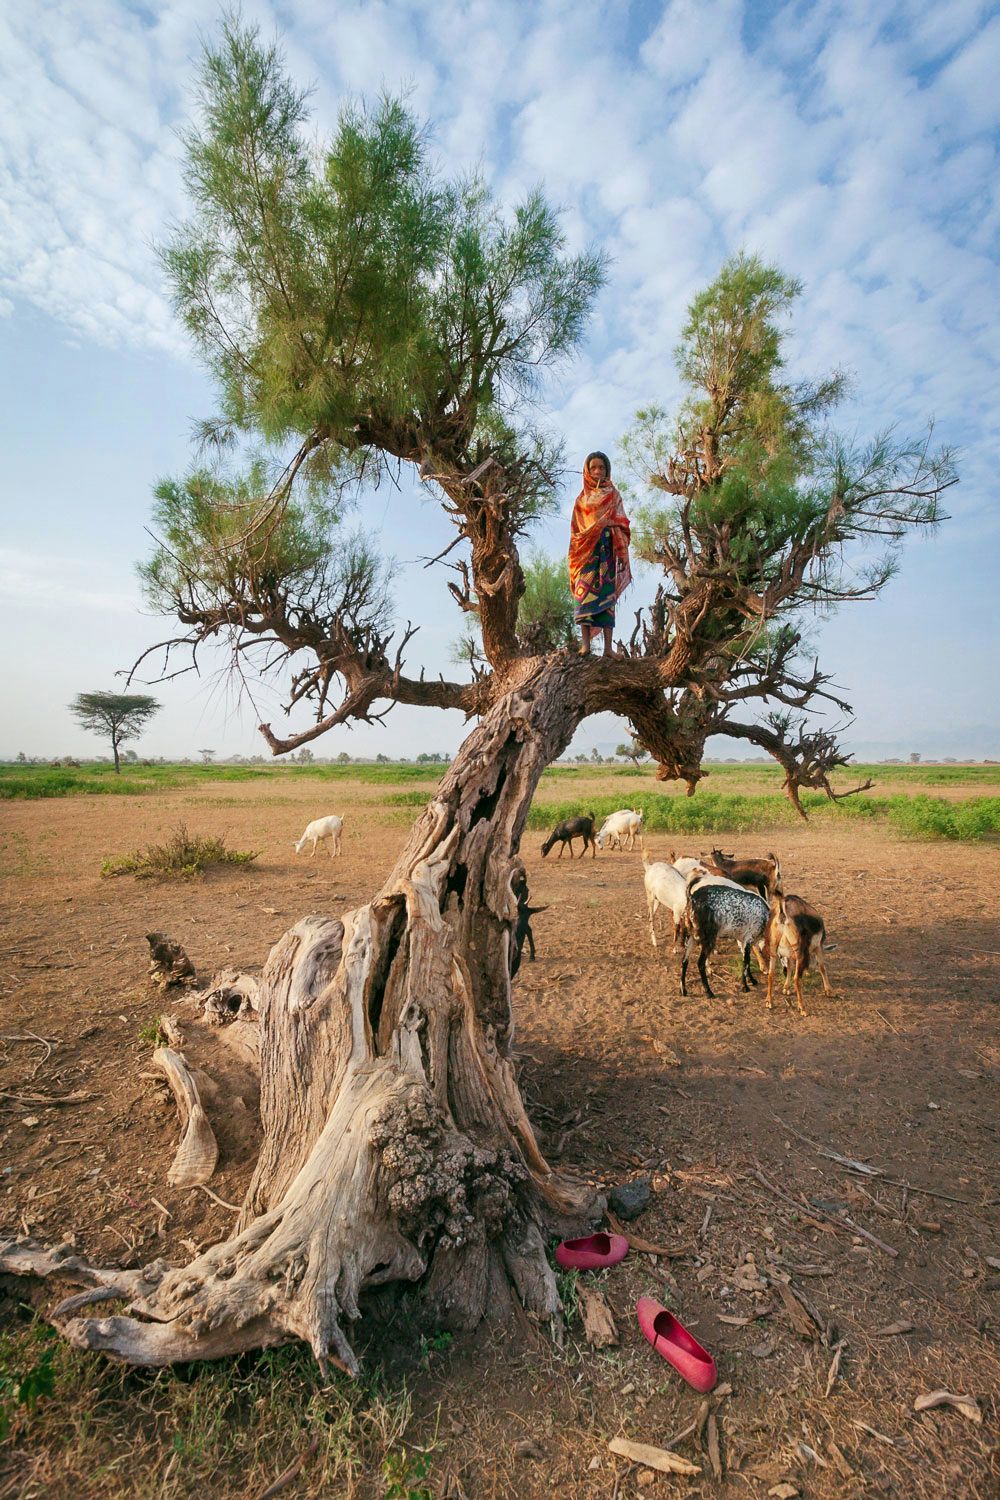 Asalmahi watches the family's goats from up in a tree; Afar, Ethiopia